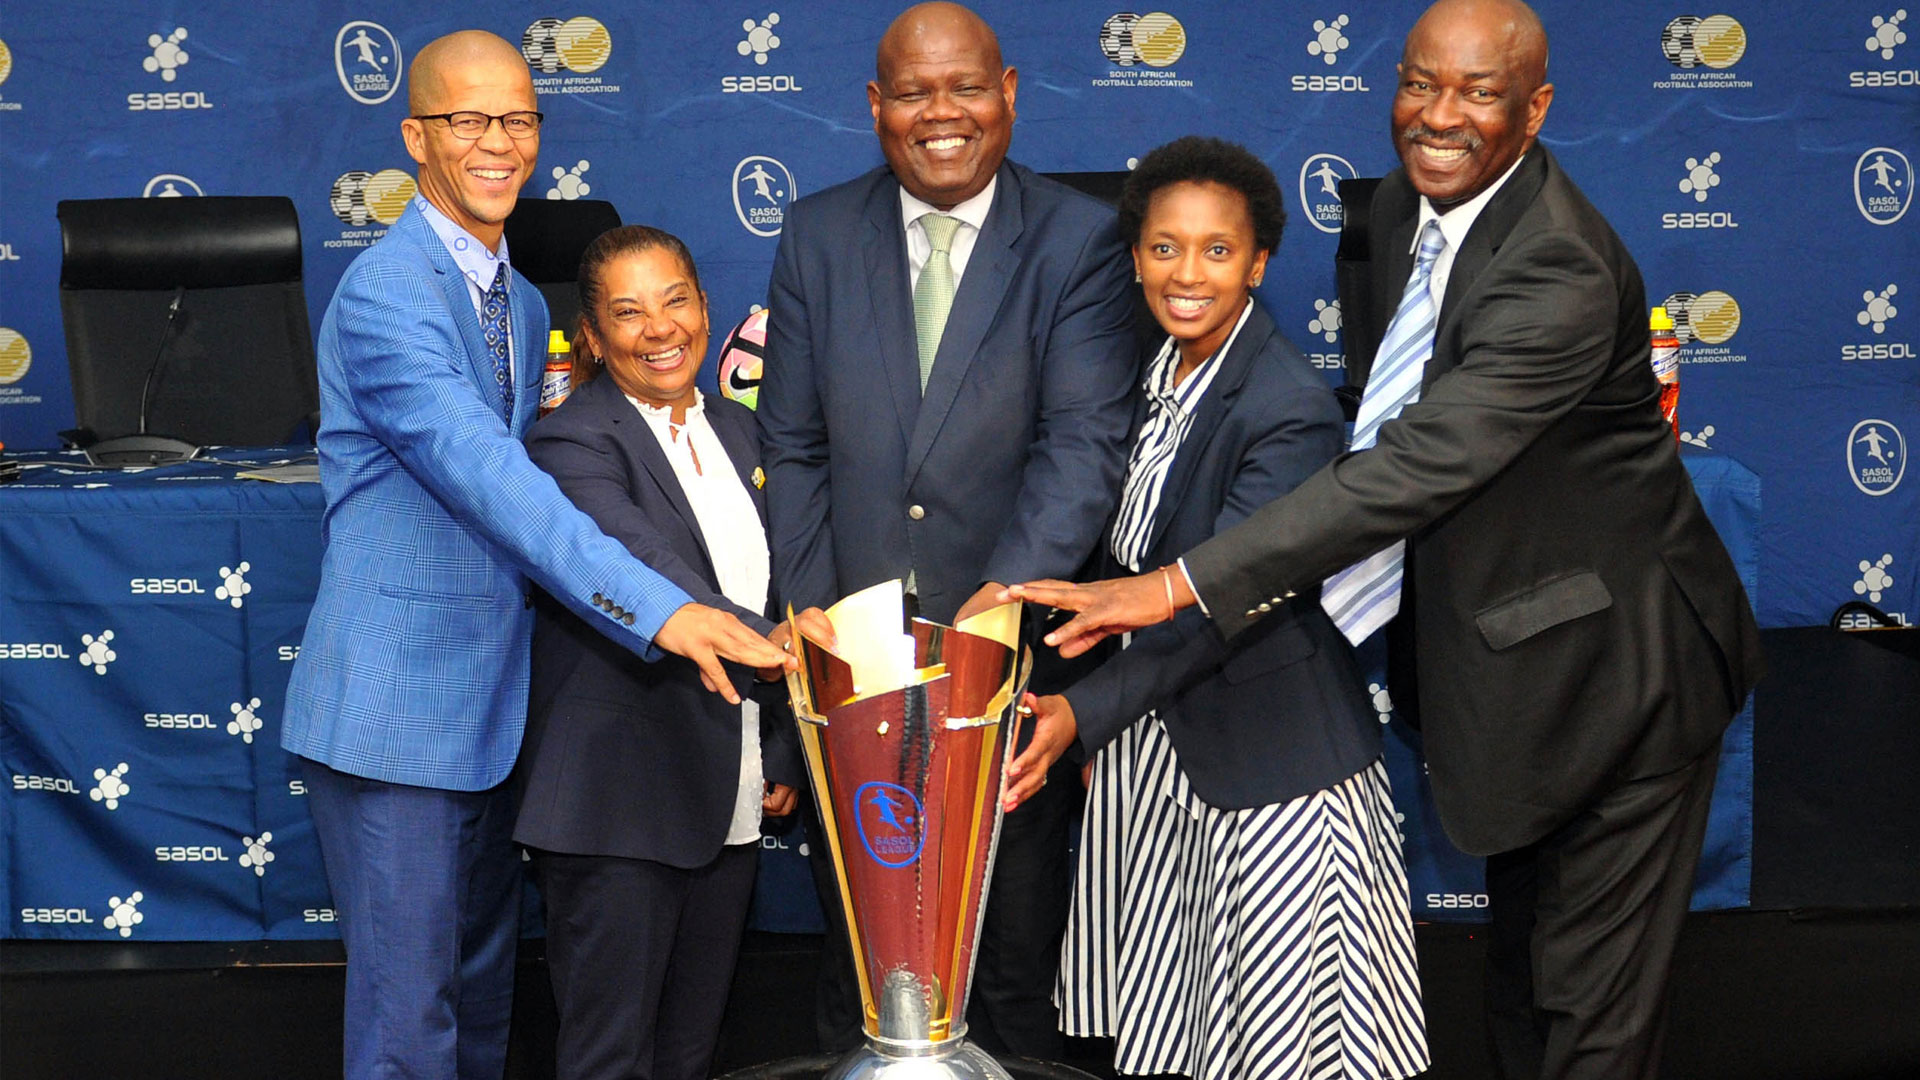 Gladwin White SAFA, Desiree Ellis coach of South Africa, Gay Mokoena SAFA Vice President and Acting CEO, Nozipho Mbatha SASOL Group Brand Manager and Thomas Sadiki SAFA Head of Competition during the 2019 SASOL League National Championship Draw on 21 November 2019 at SAFA House